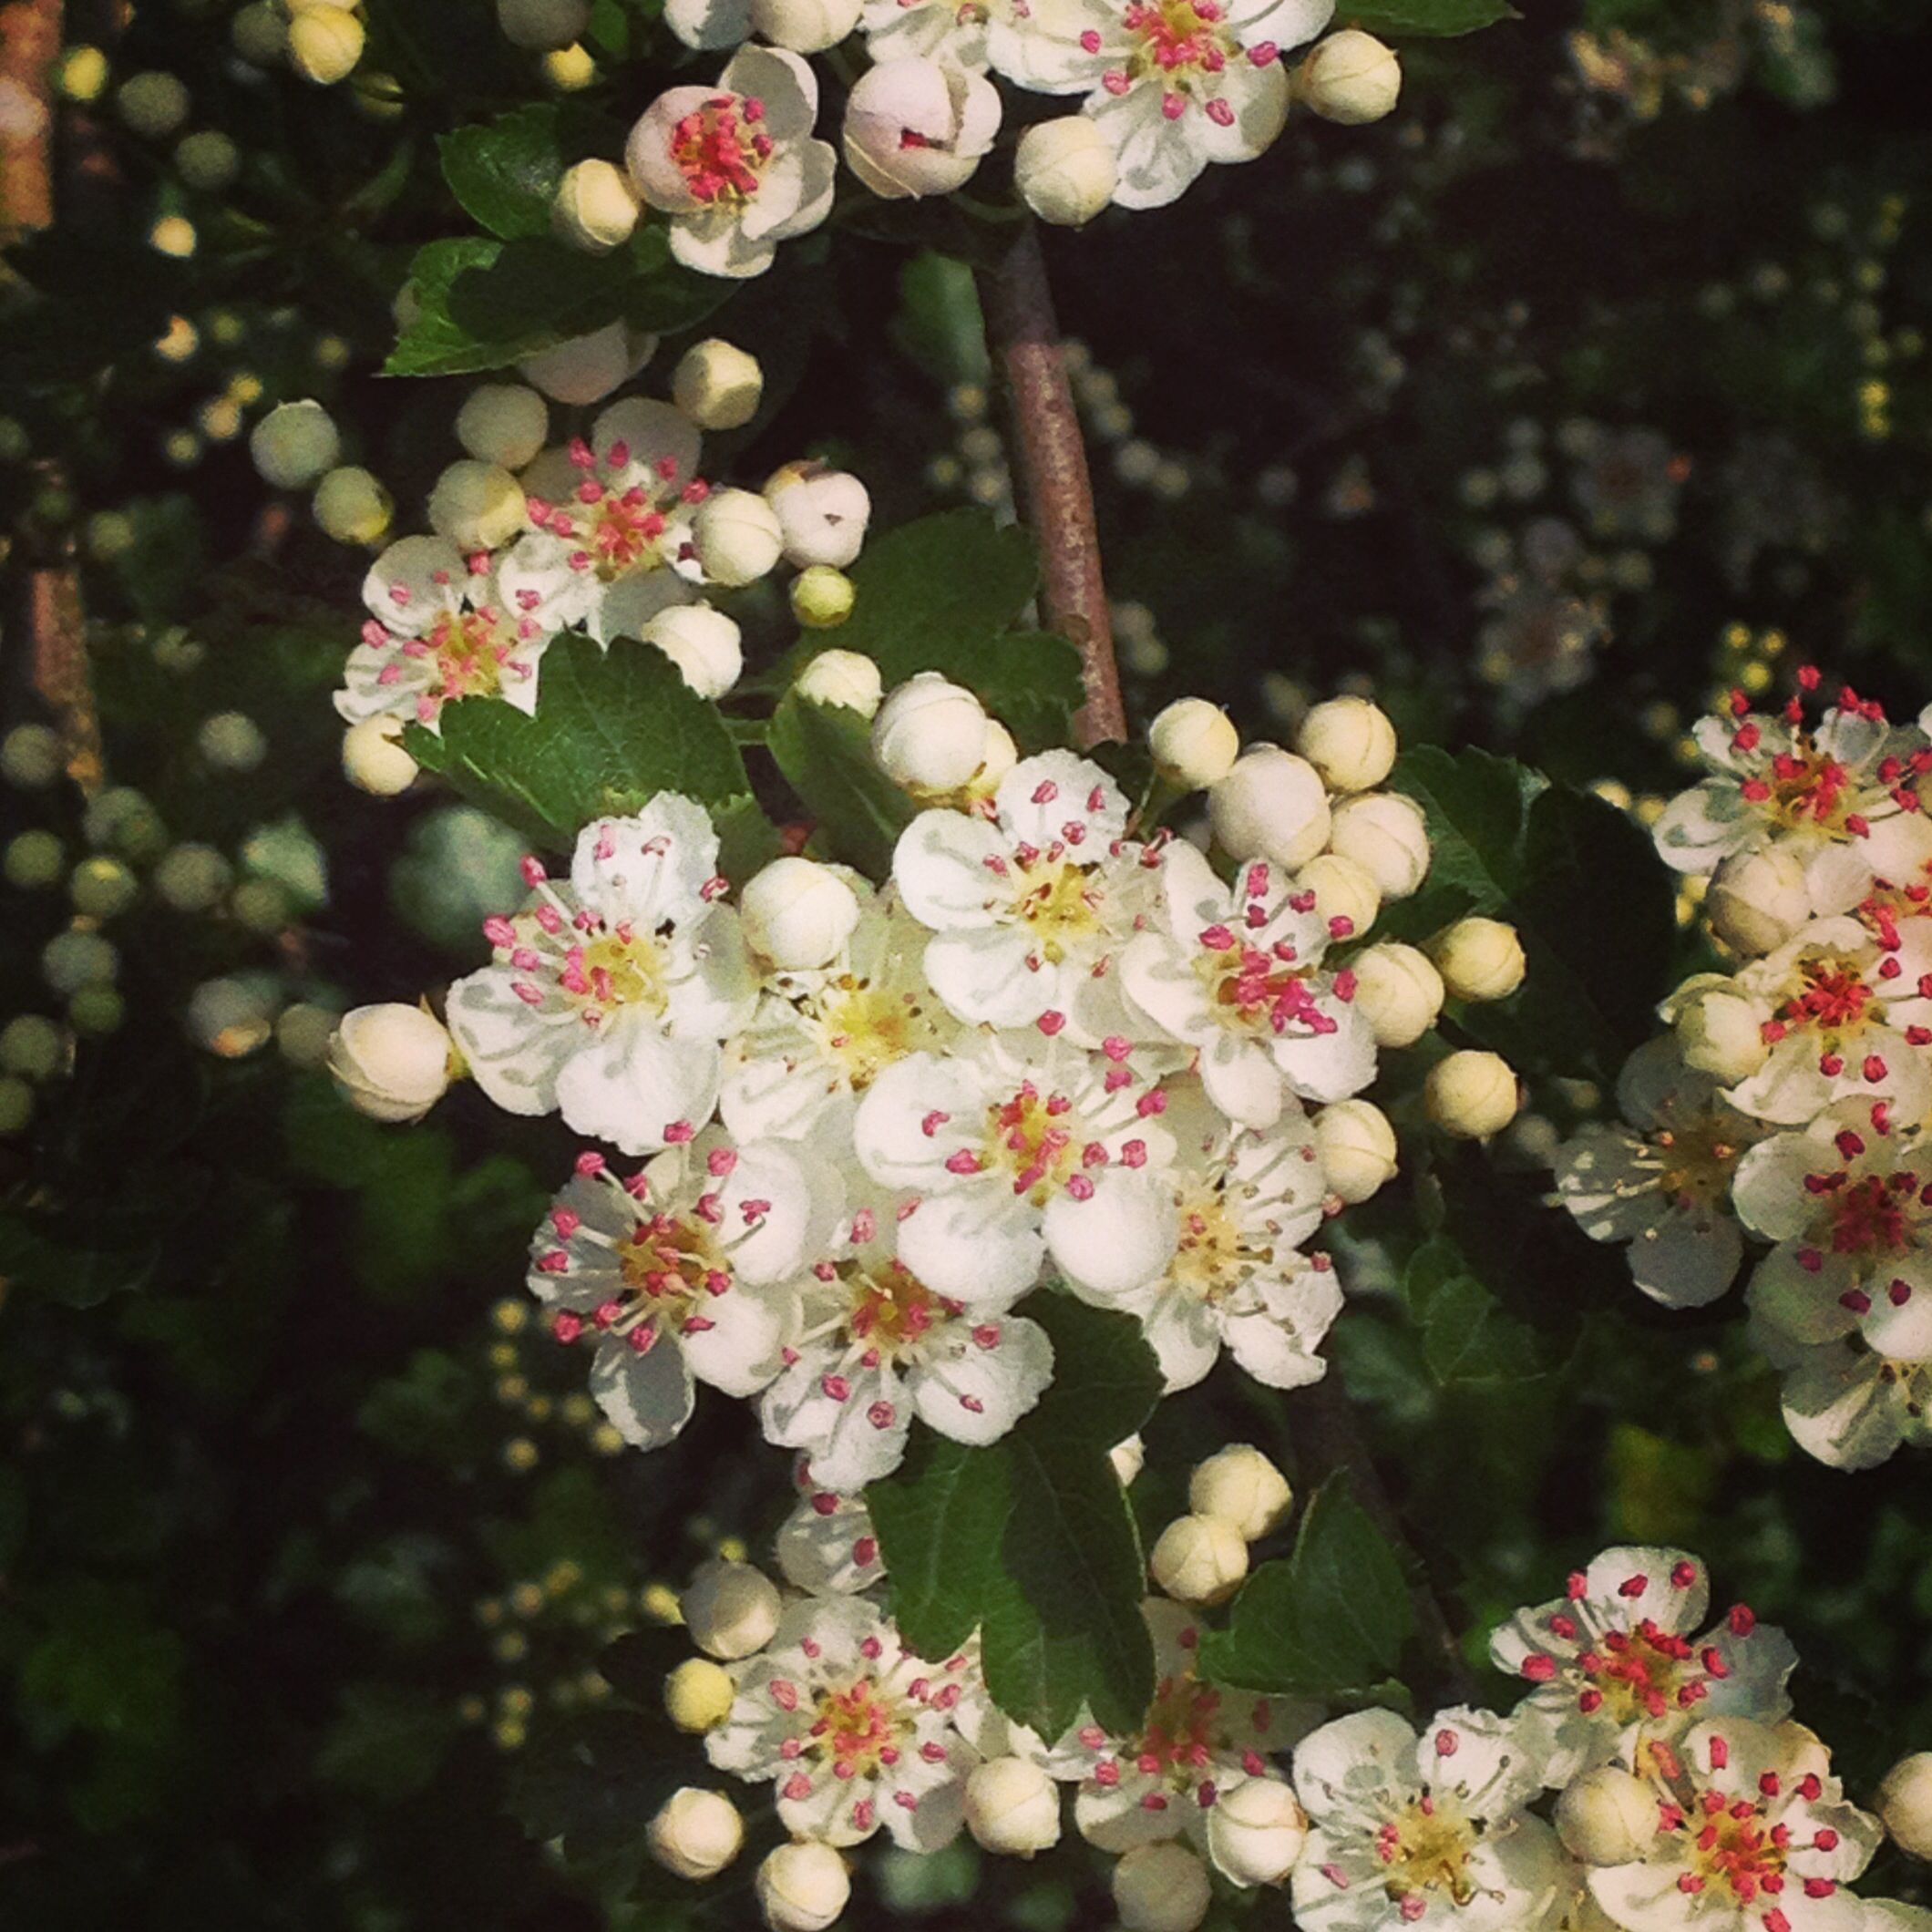 Hawthorn flowers are a certain sign that spring is in full flow